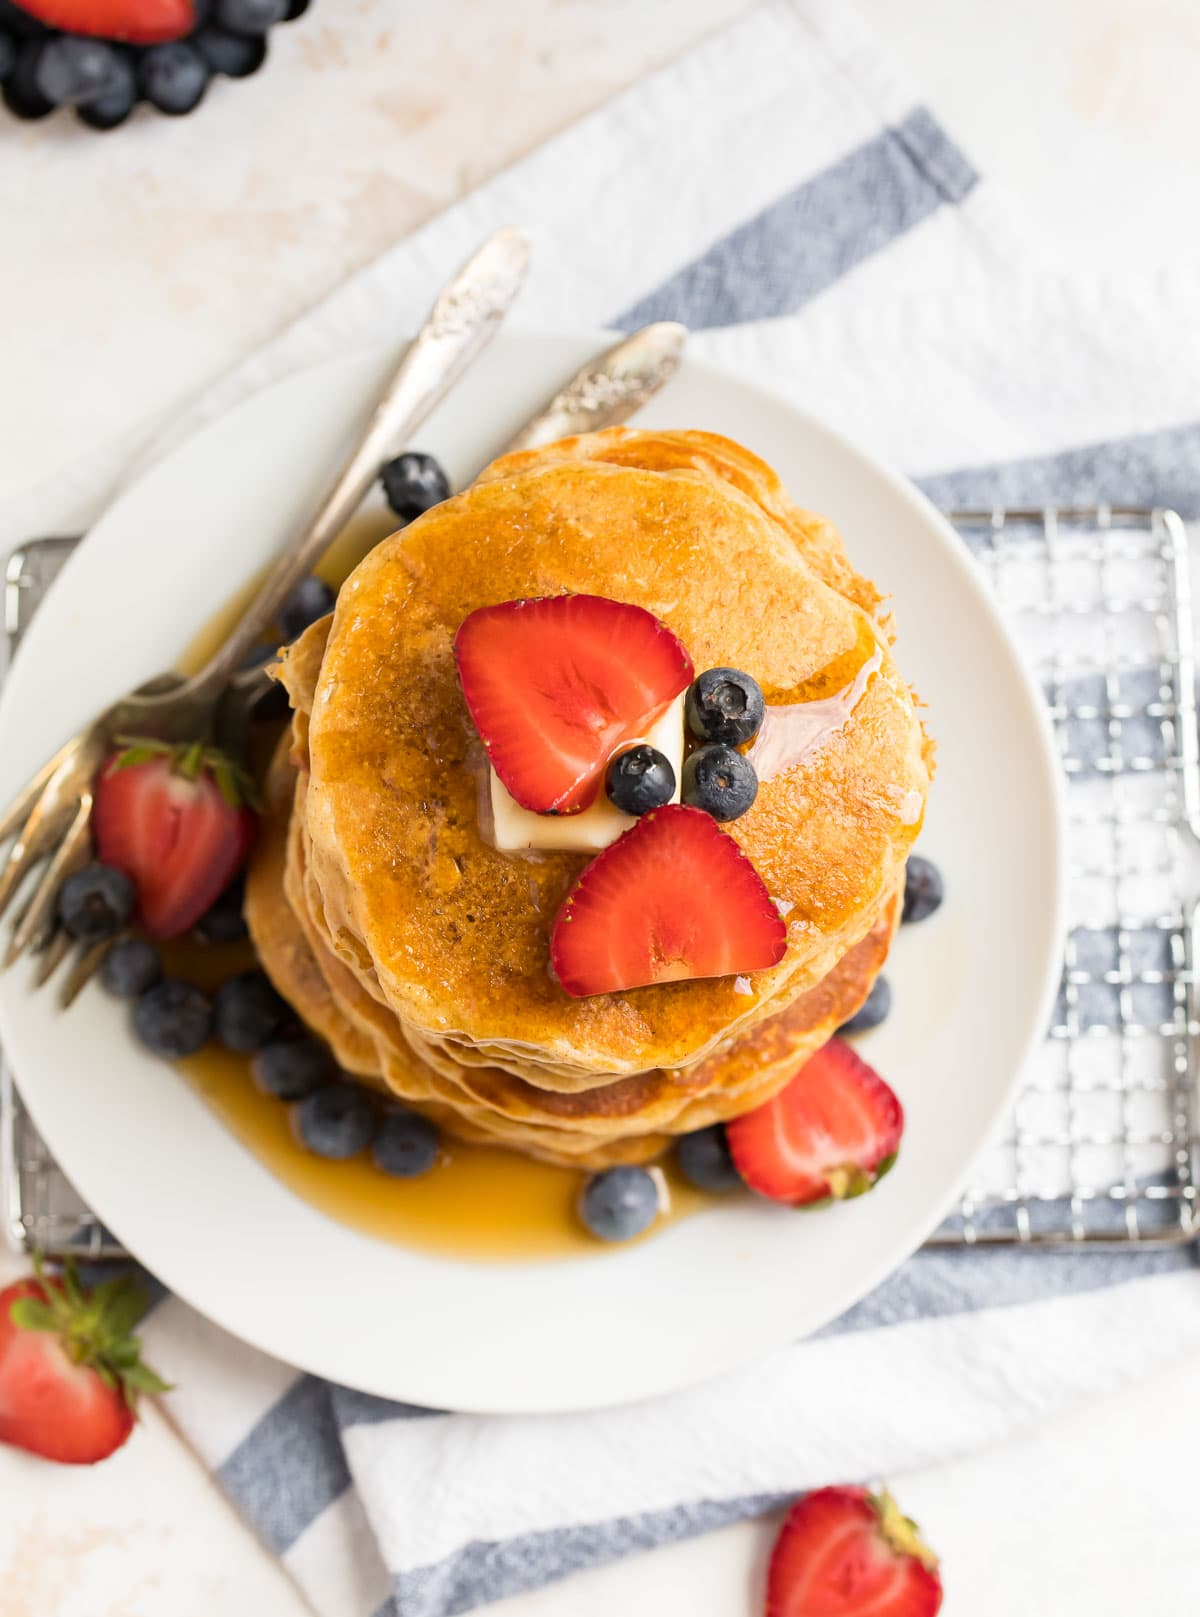 Oatmeal pancakes with berries, butter, and syrup